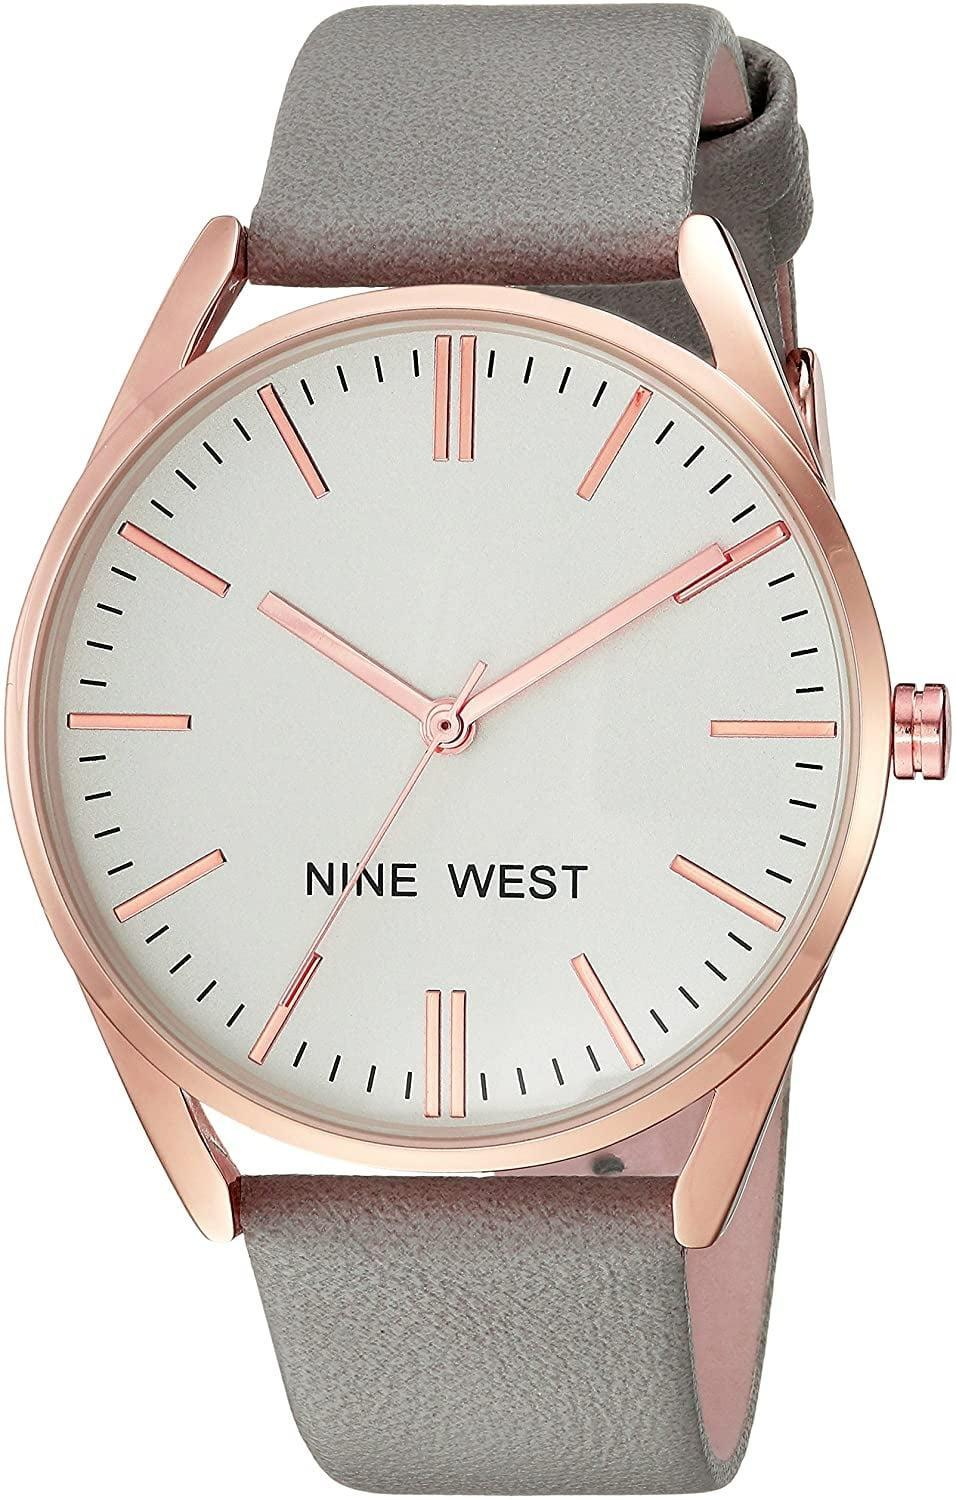 <p>This stylish <span>Nine West Strap Watch</span> ($25, originally $37) is an incredibly good deal.</p>